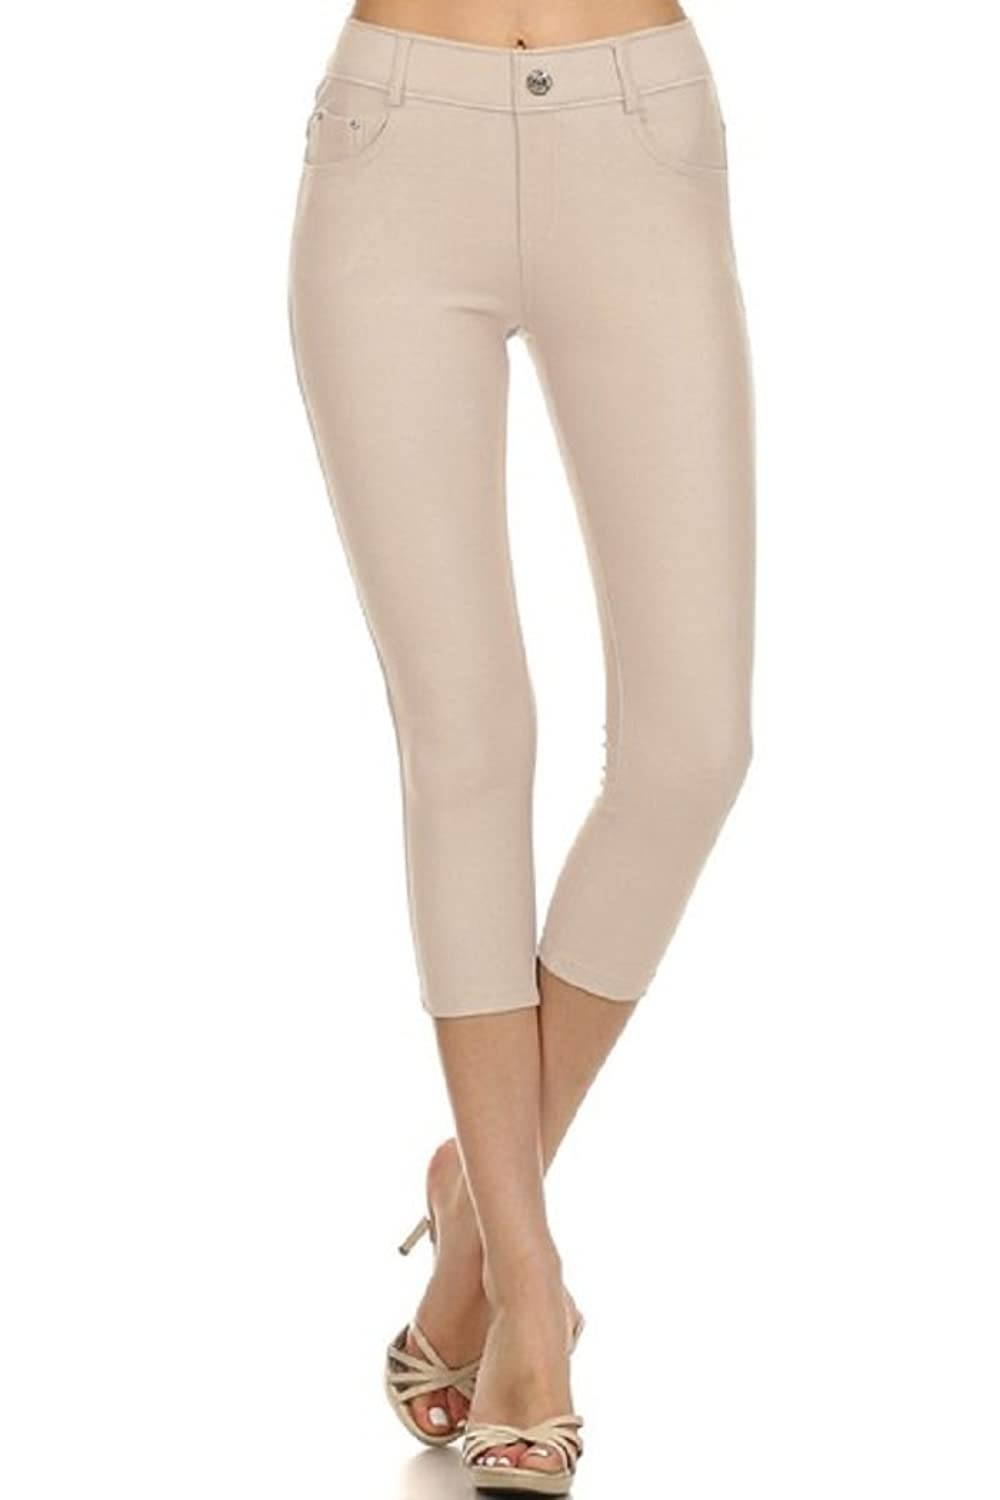 Yelete denim jeggings